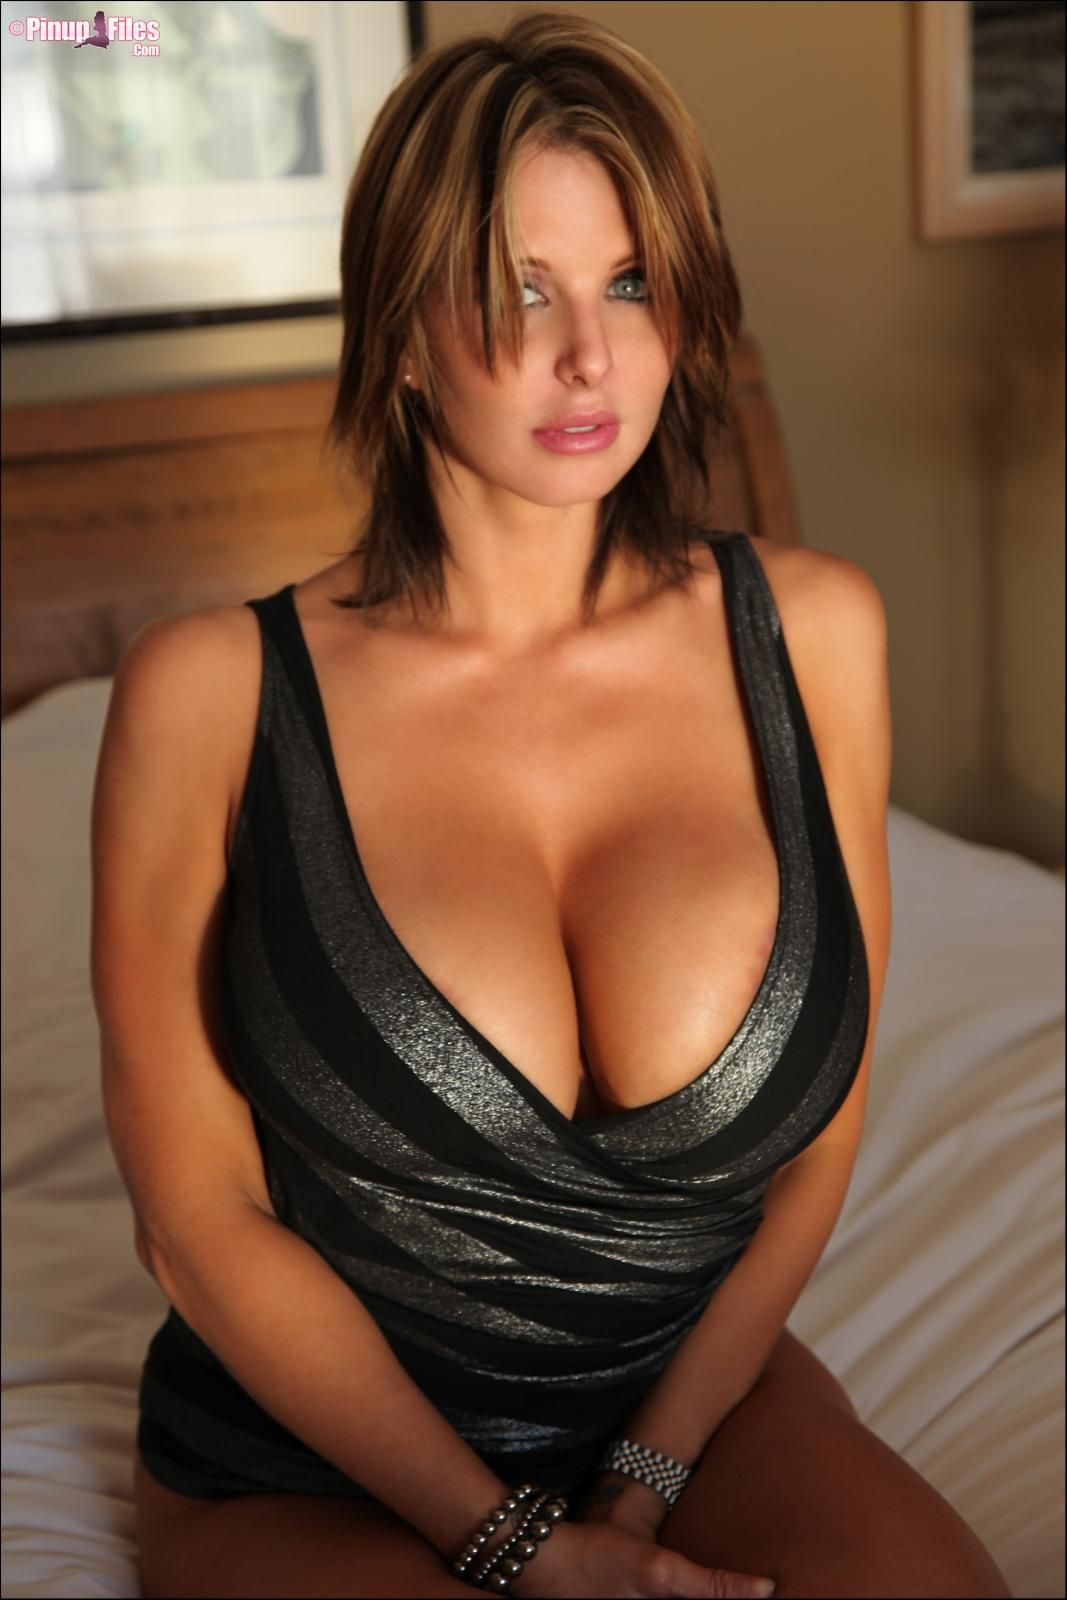 image Claire and alura enjoy in hot office threesome